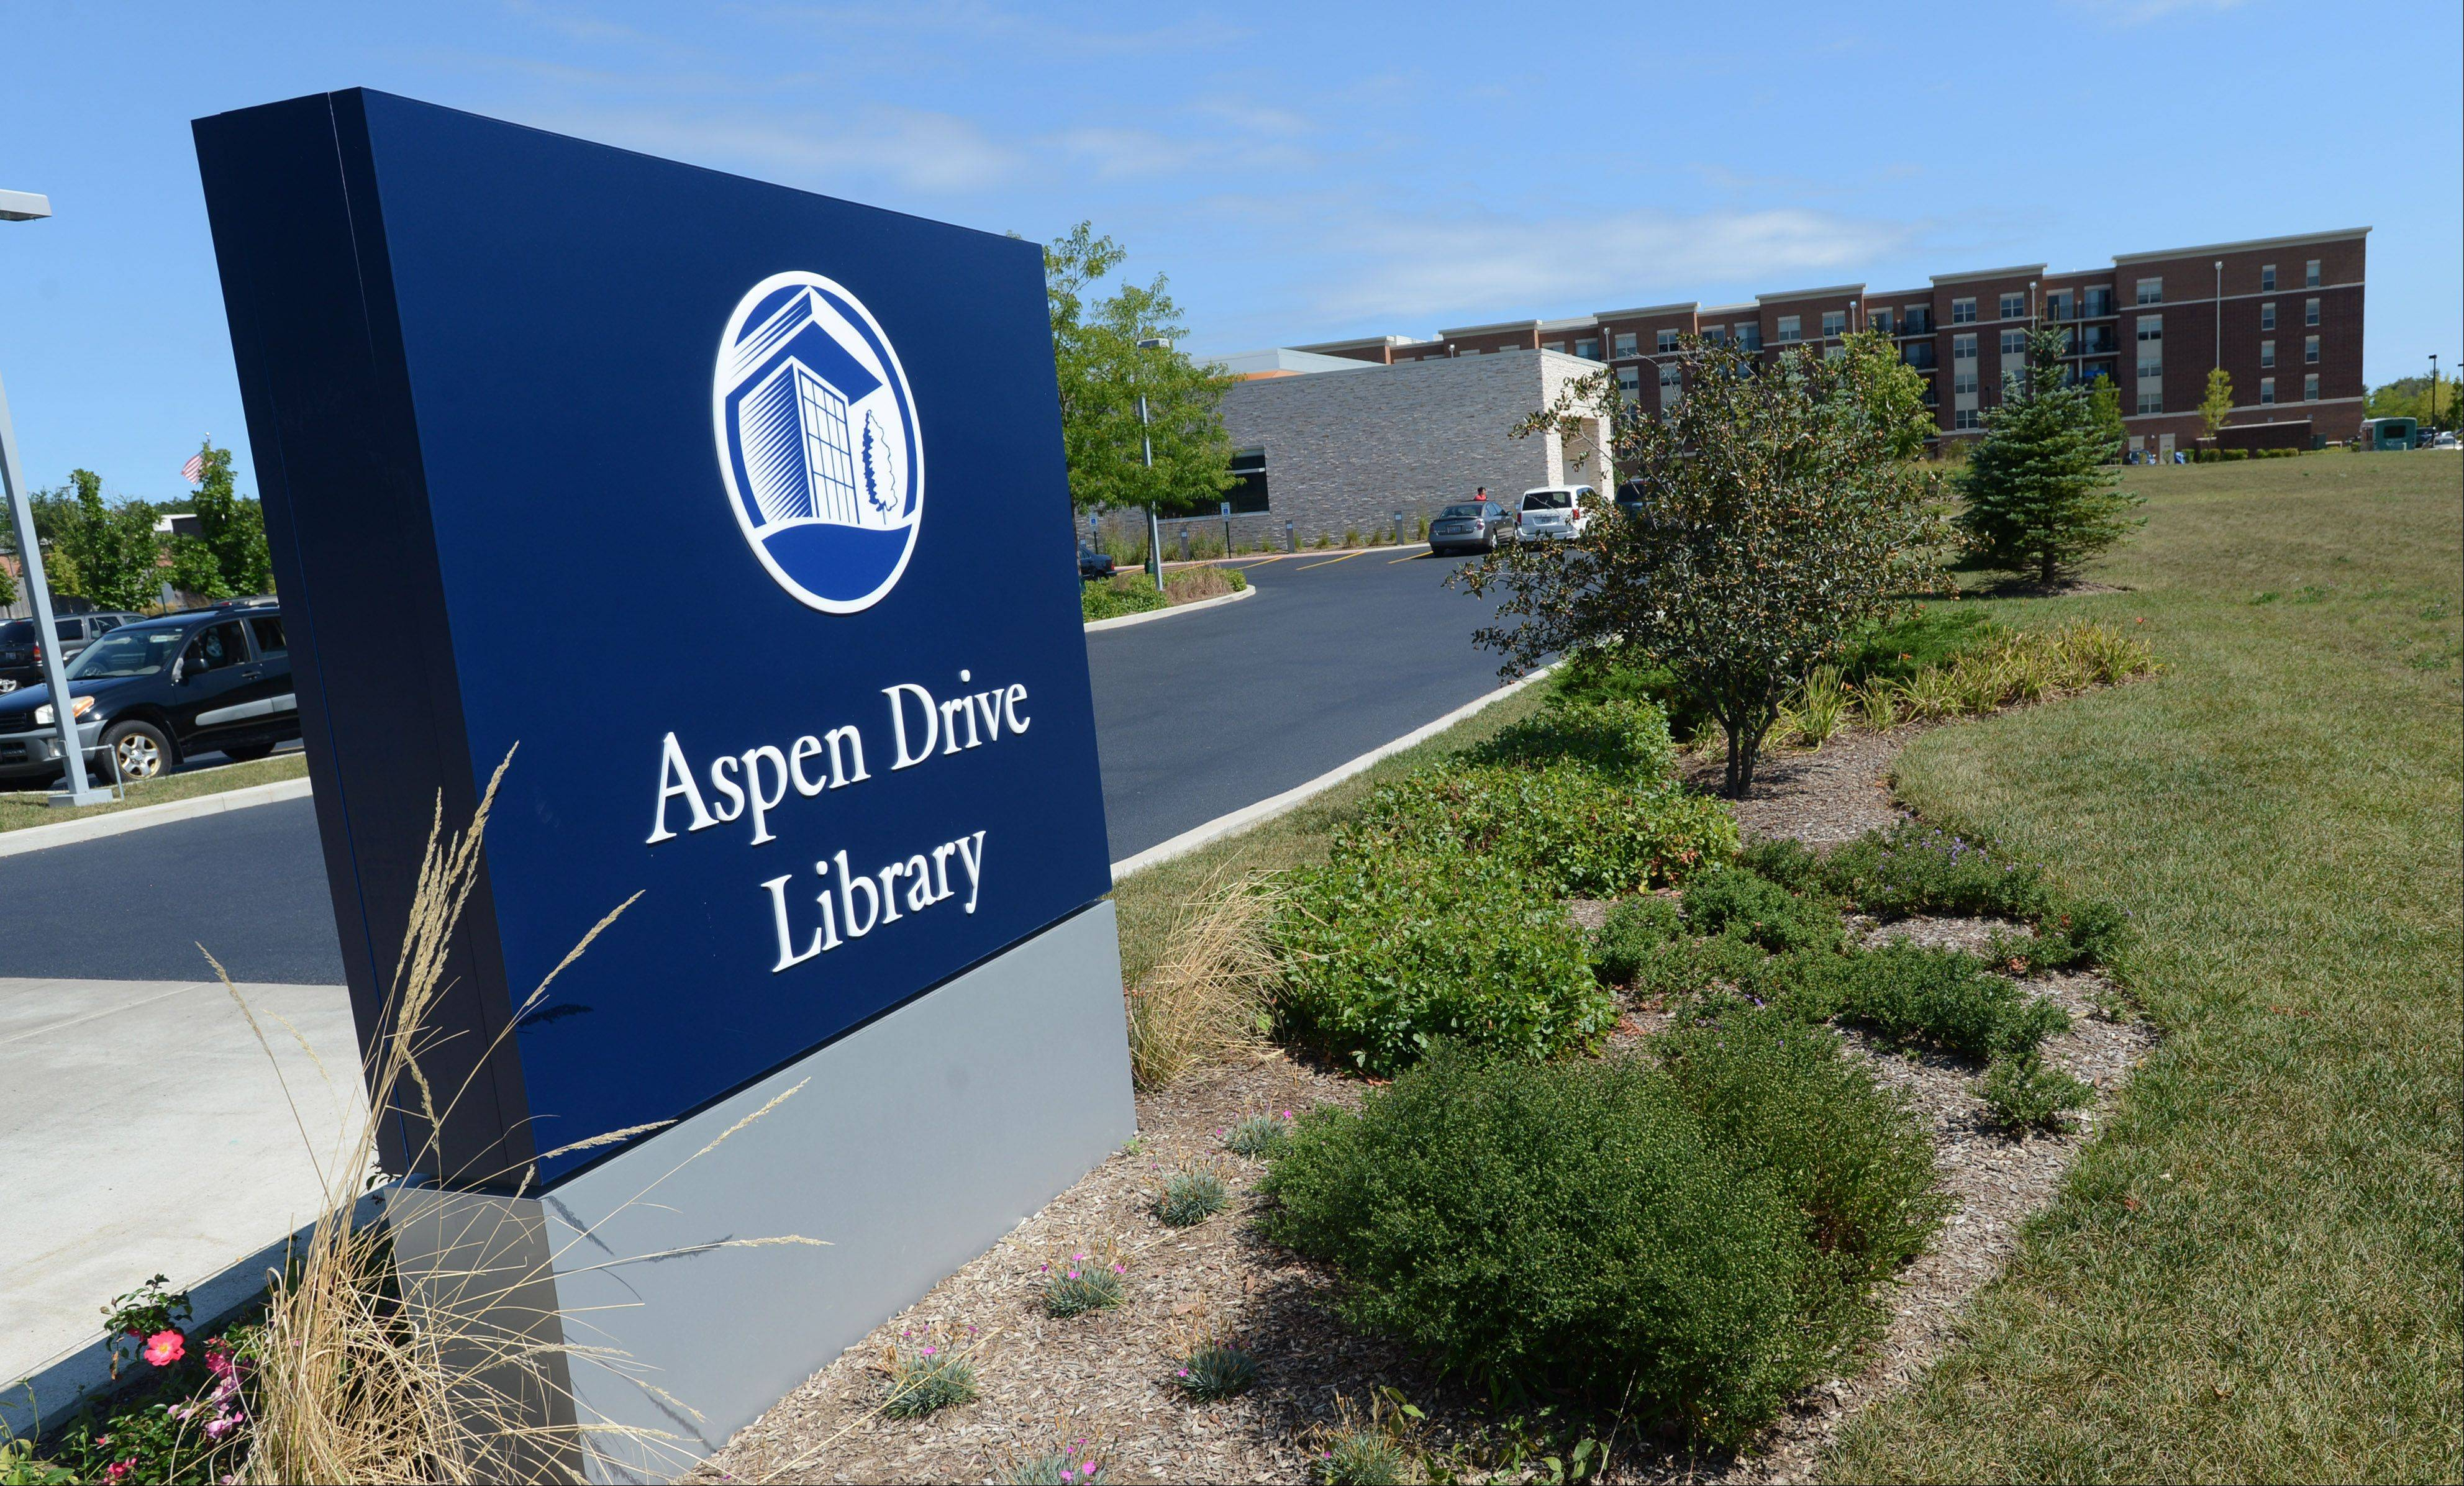 Officials are discussing expanding the Aspen Drive Library in Vernon Hills.